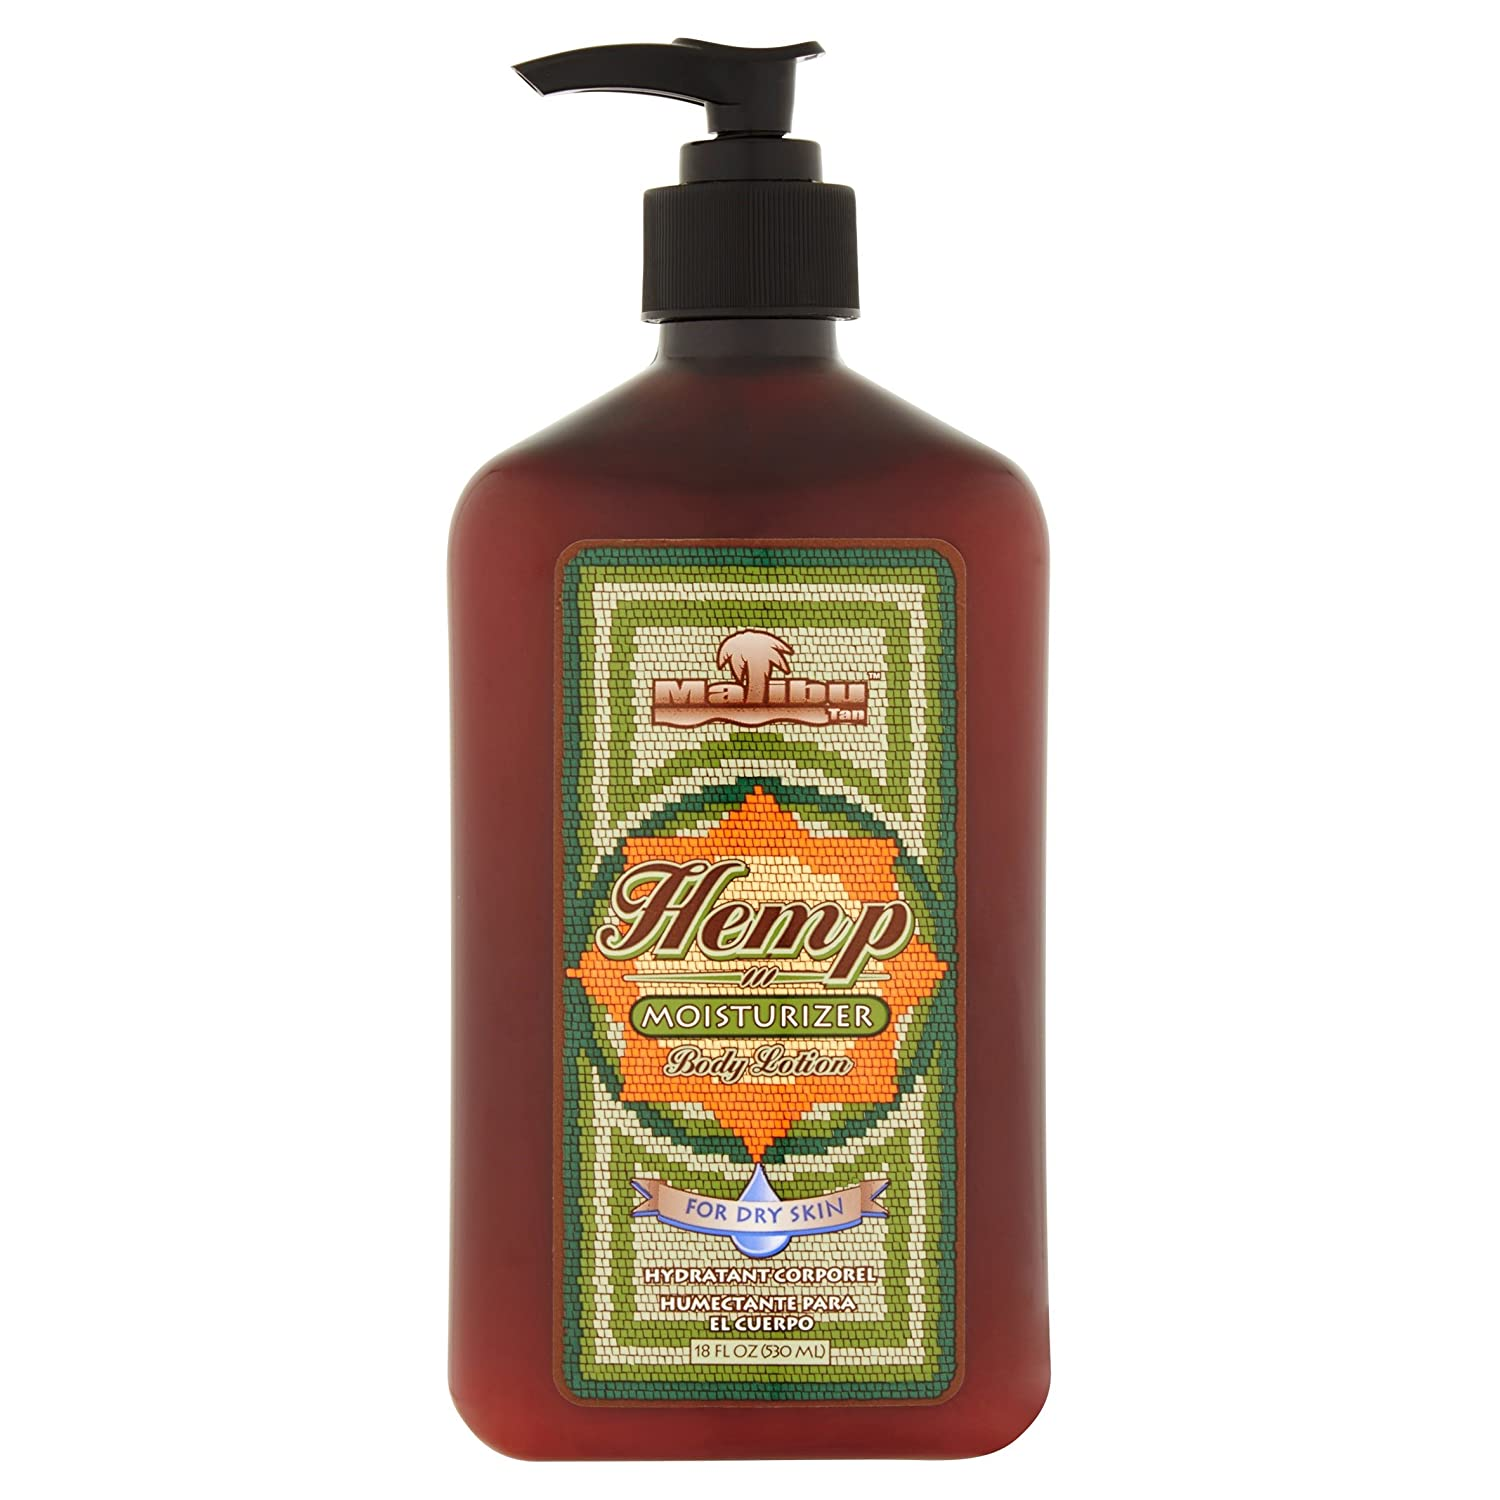 Malibu Tan For Dry Skin Hemp Body Lotion, 18 fl oz